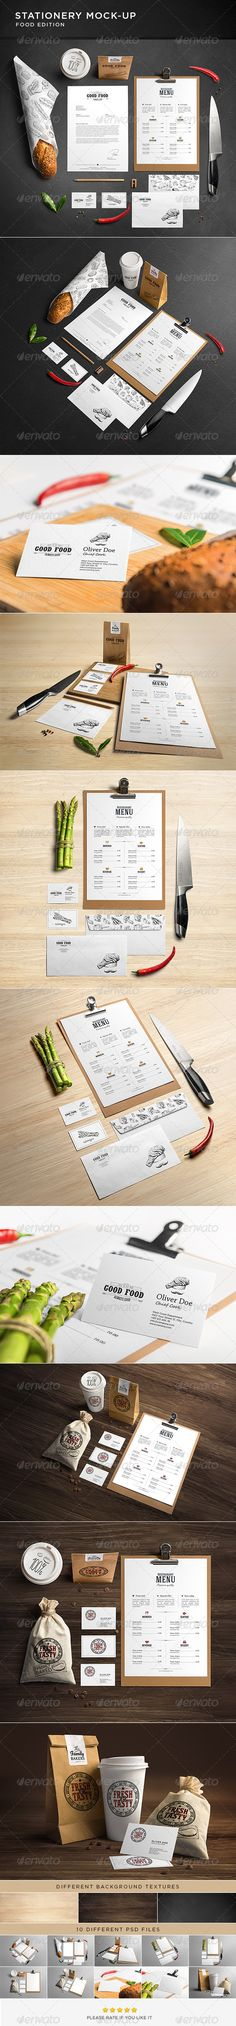 Stationery / Branding Mock-Up : Check out this great #graphicriver item 'Stationery / Branding Mock-Up' http://graphicriver.net/item/stationery-branding-mockup/7484161?ref=25EGY